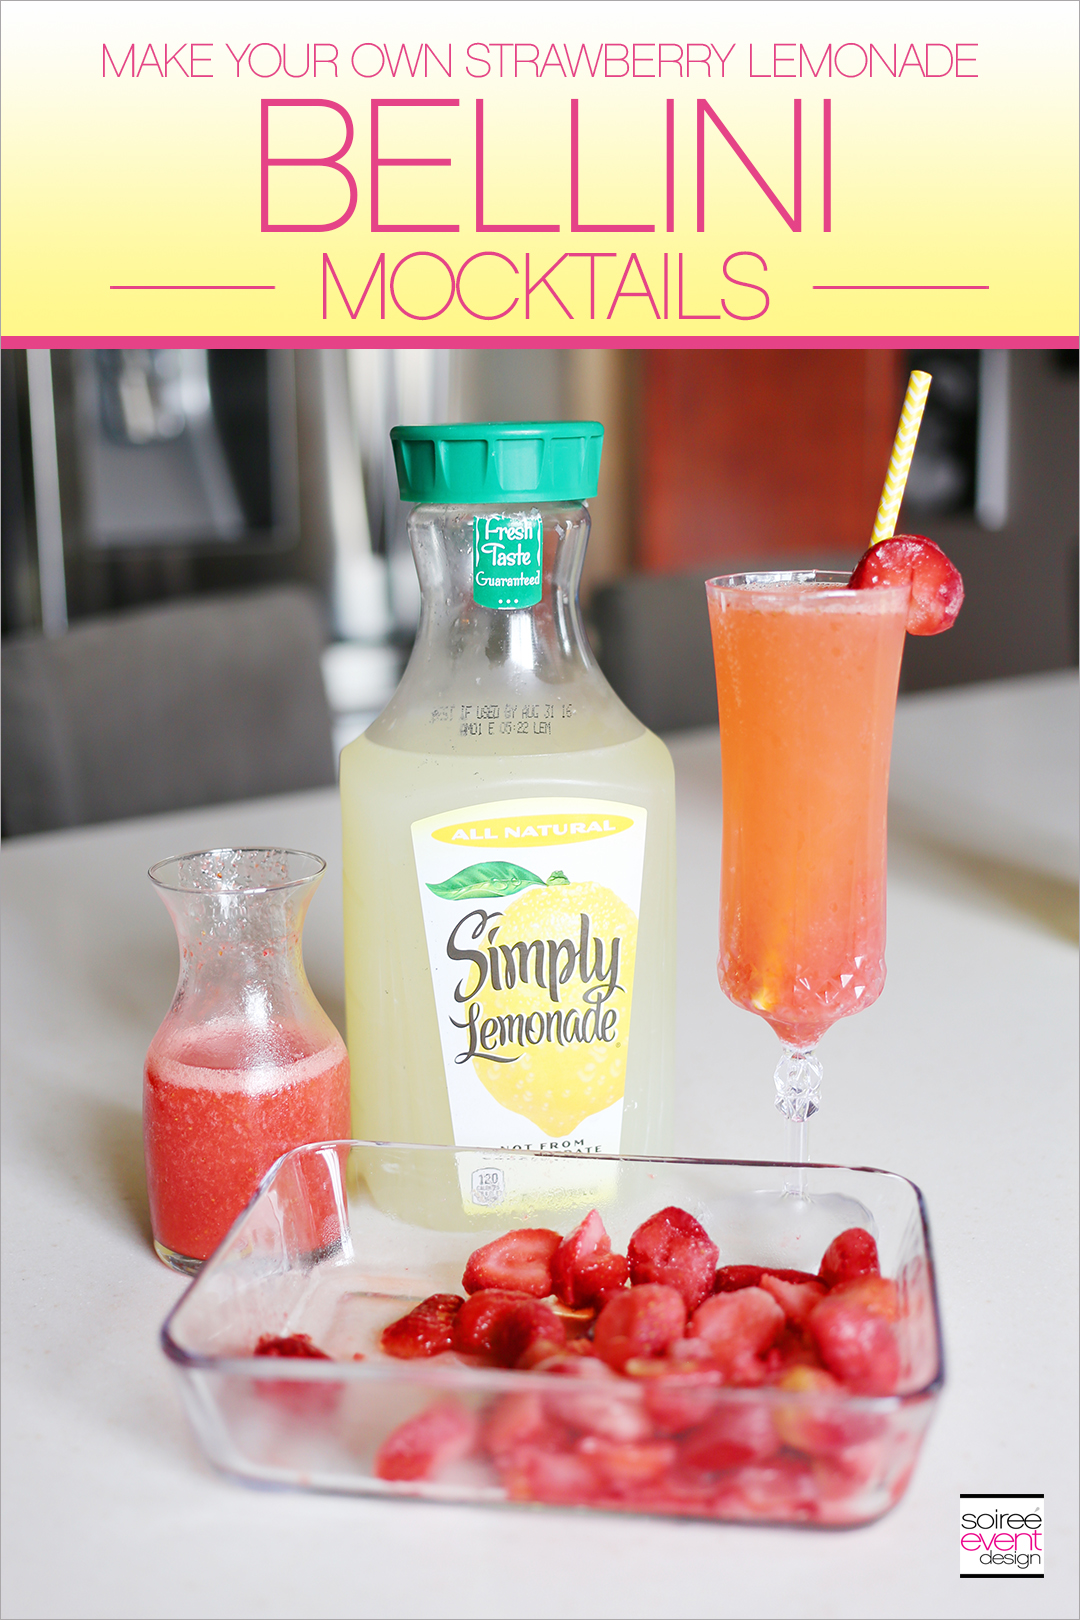 Strawberry Lemonade Bellini Mocktails